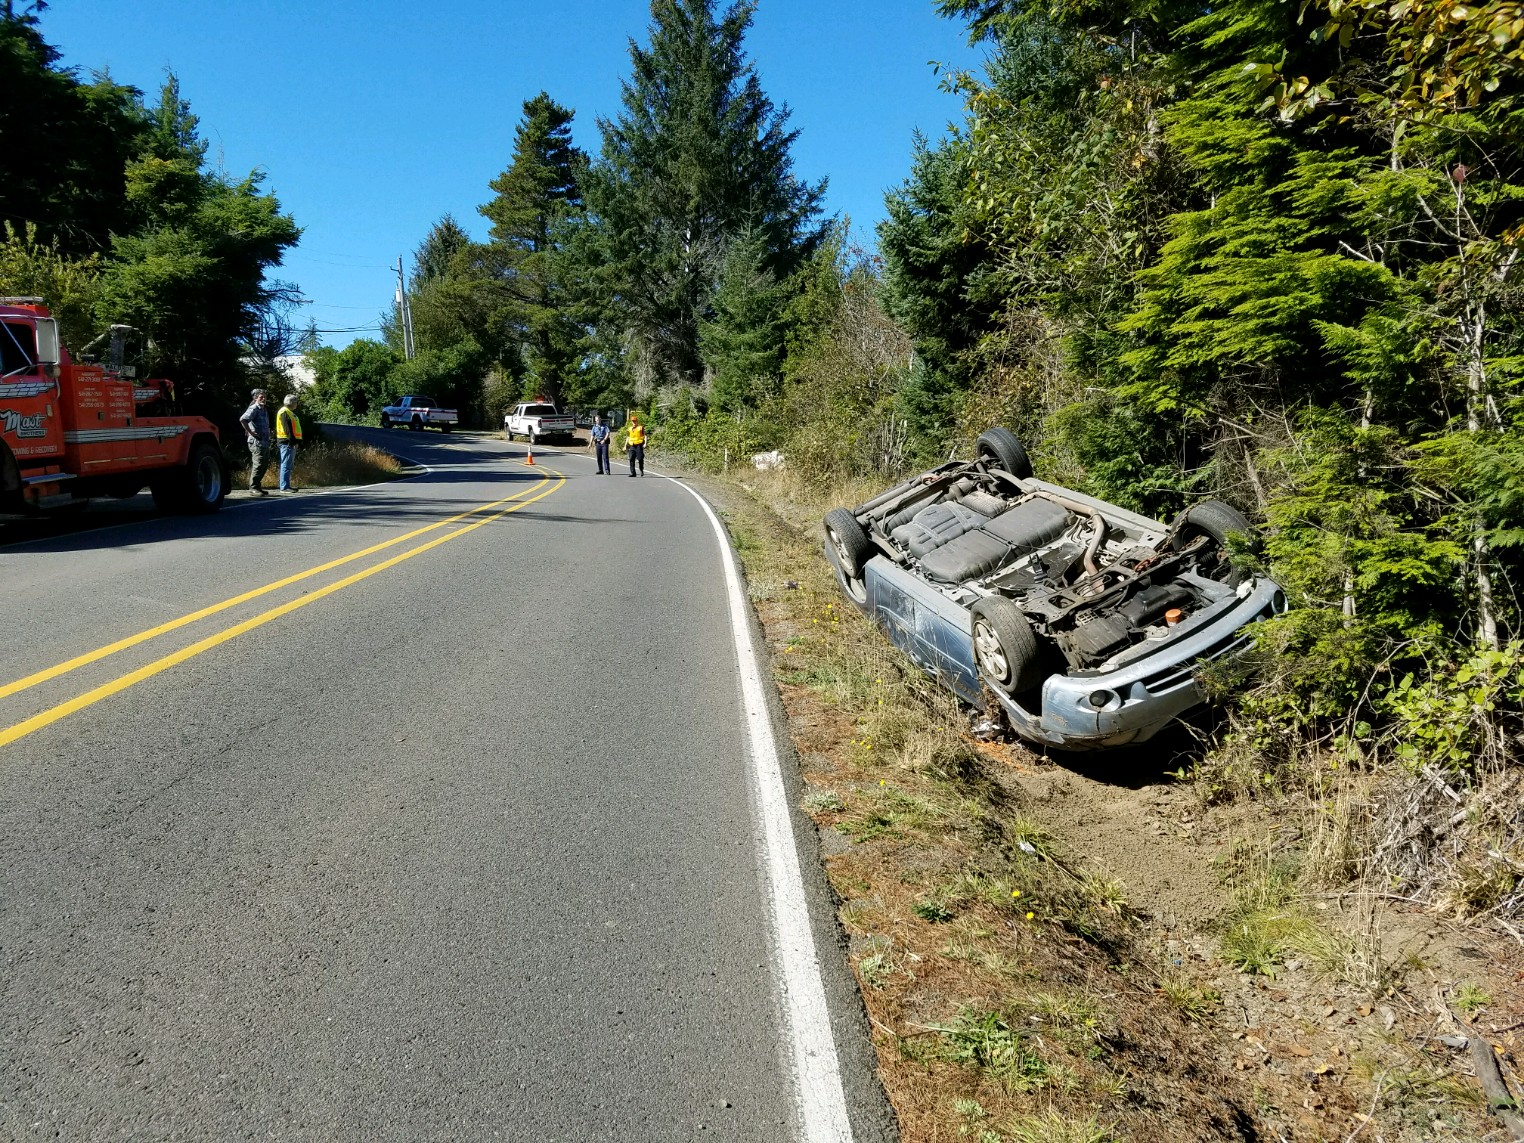 Crash scene - Coos County Sheriff's Office photo.jpeg